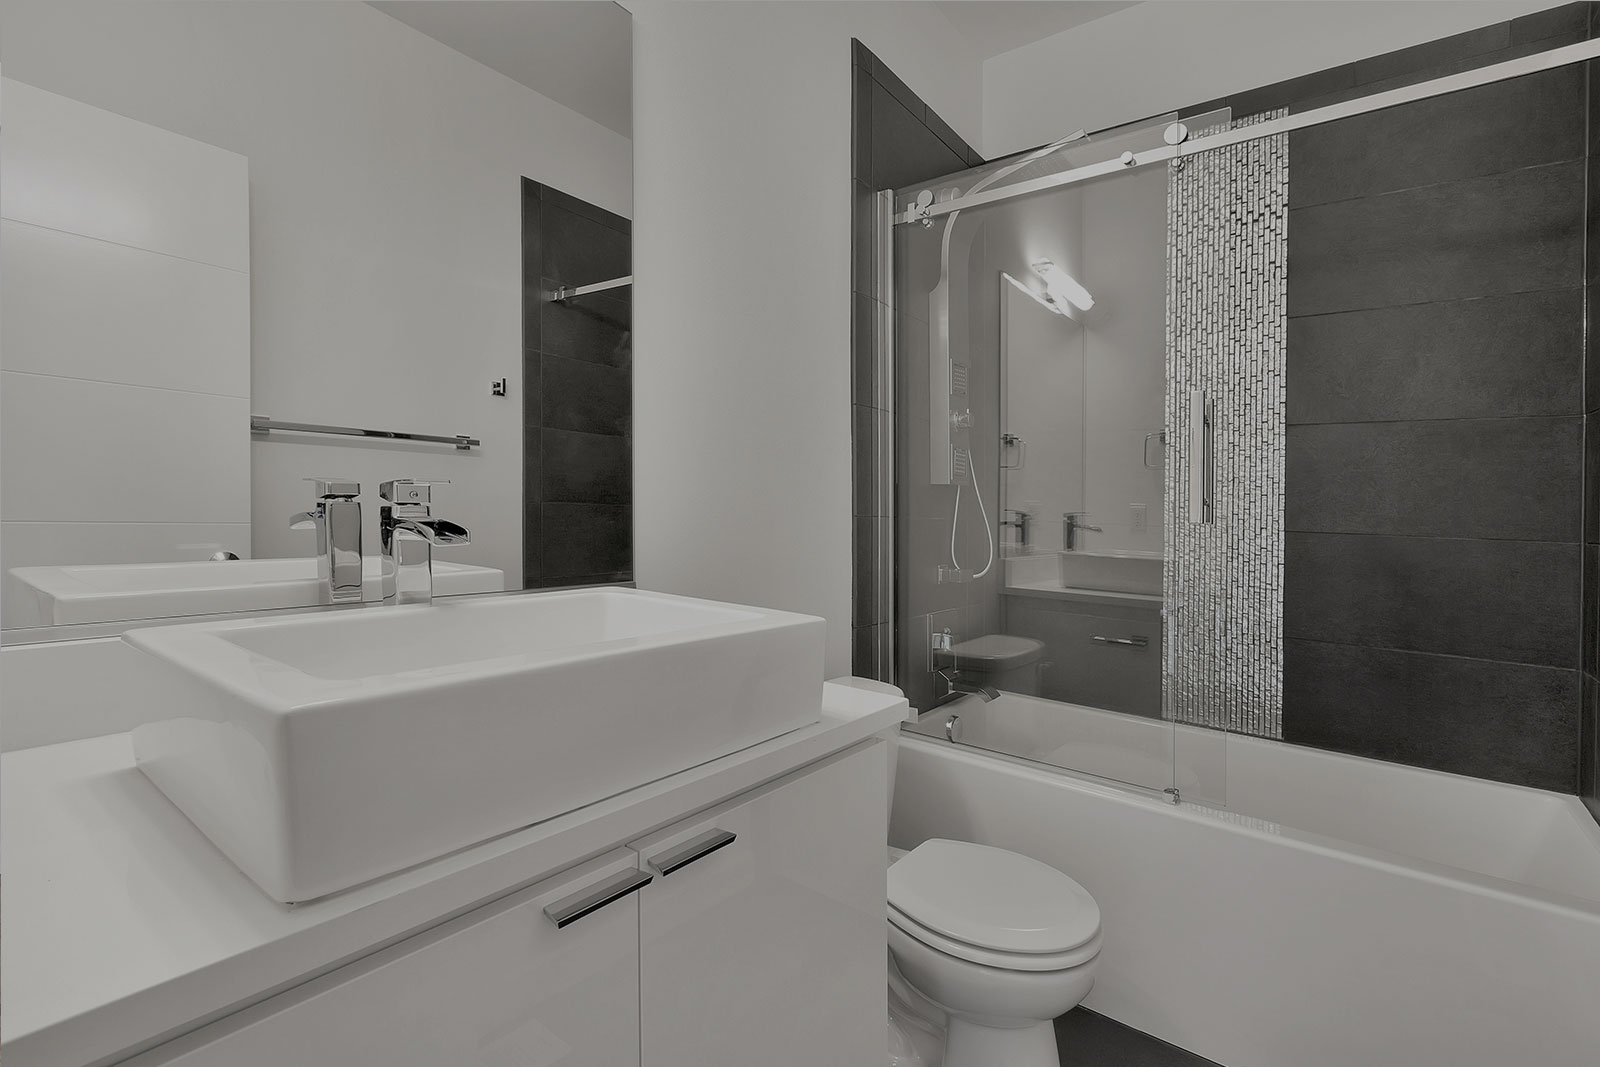 Newly renovated bathroom in Sydney